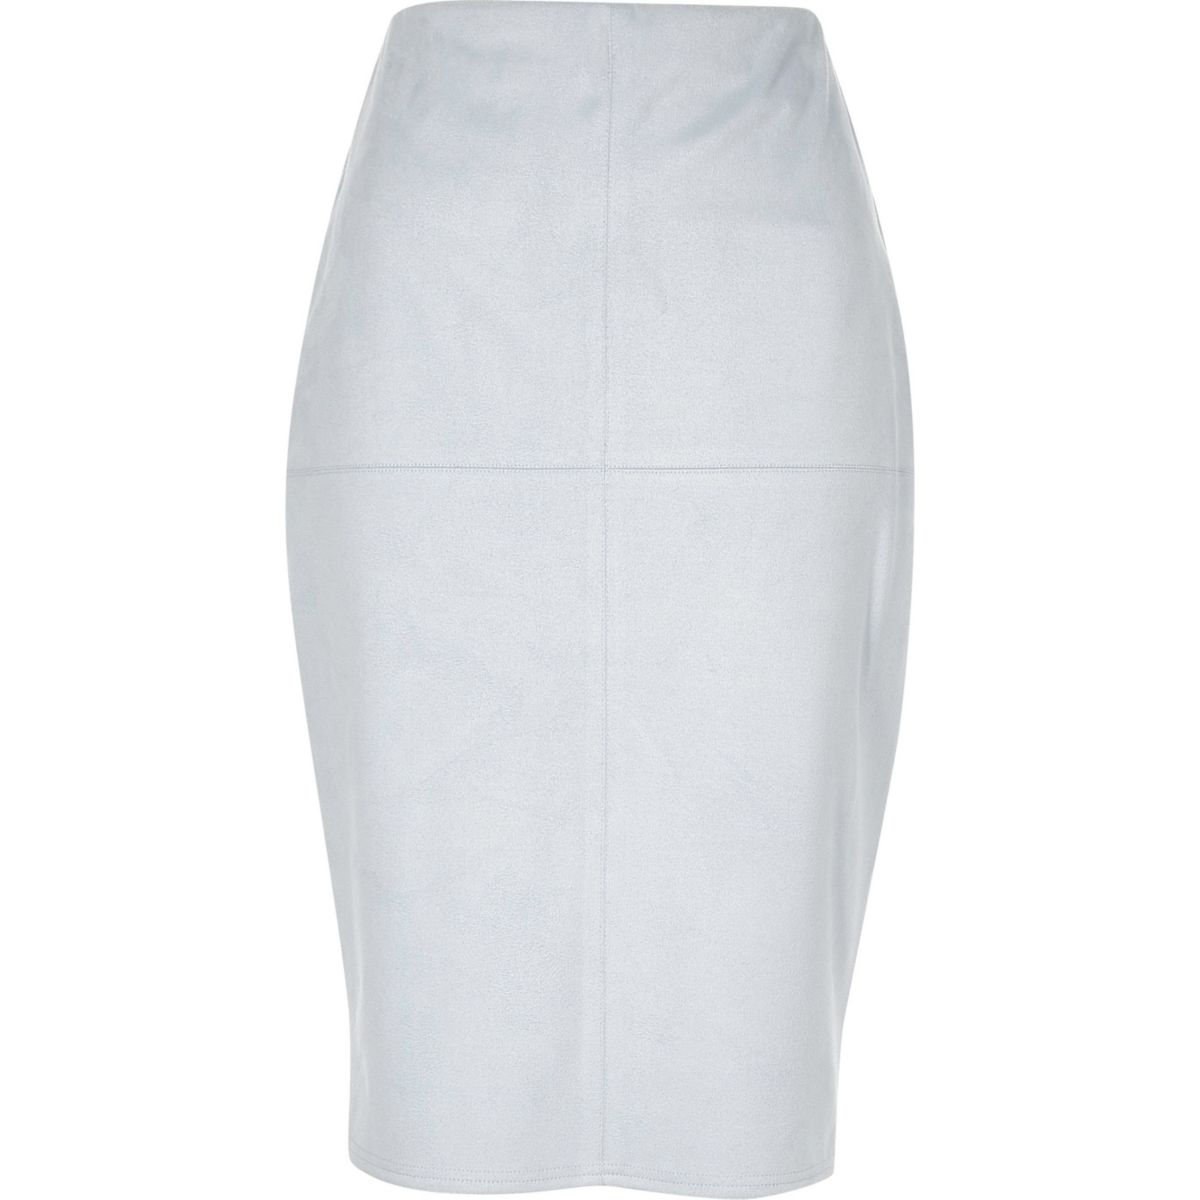 Light blue faux suede pencil skirt